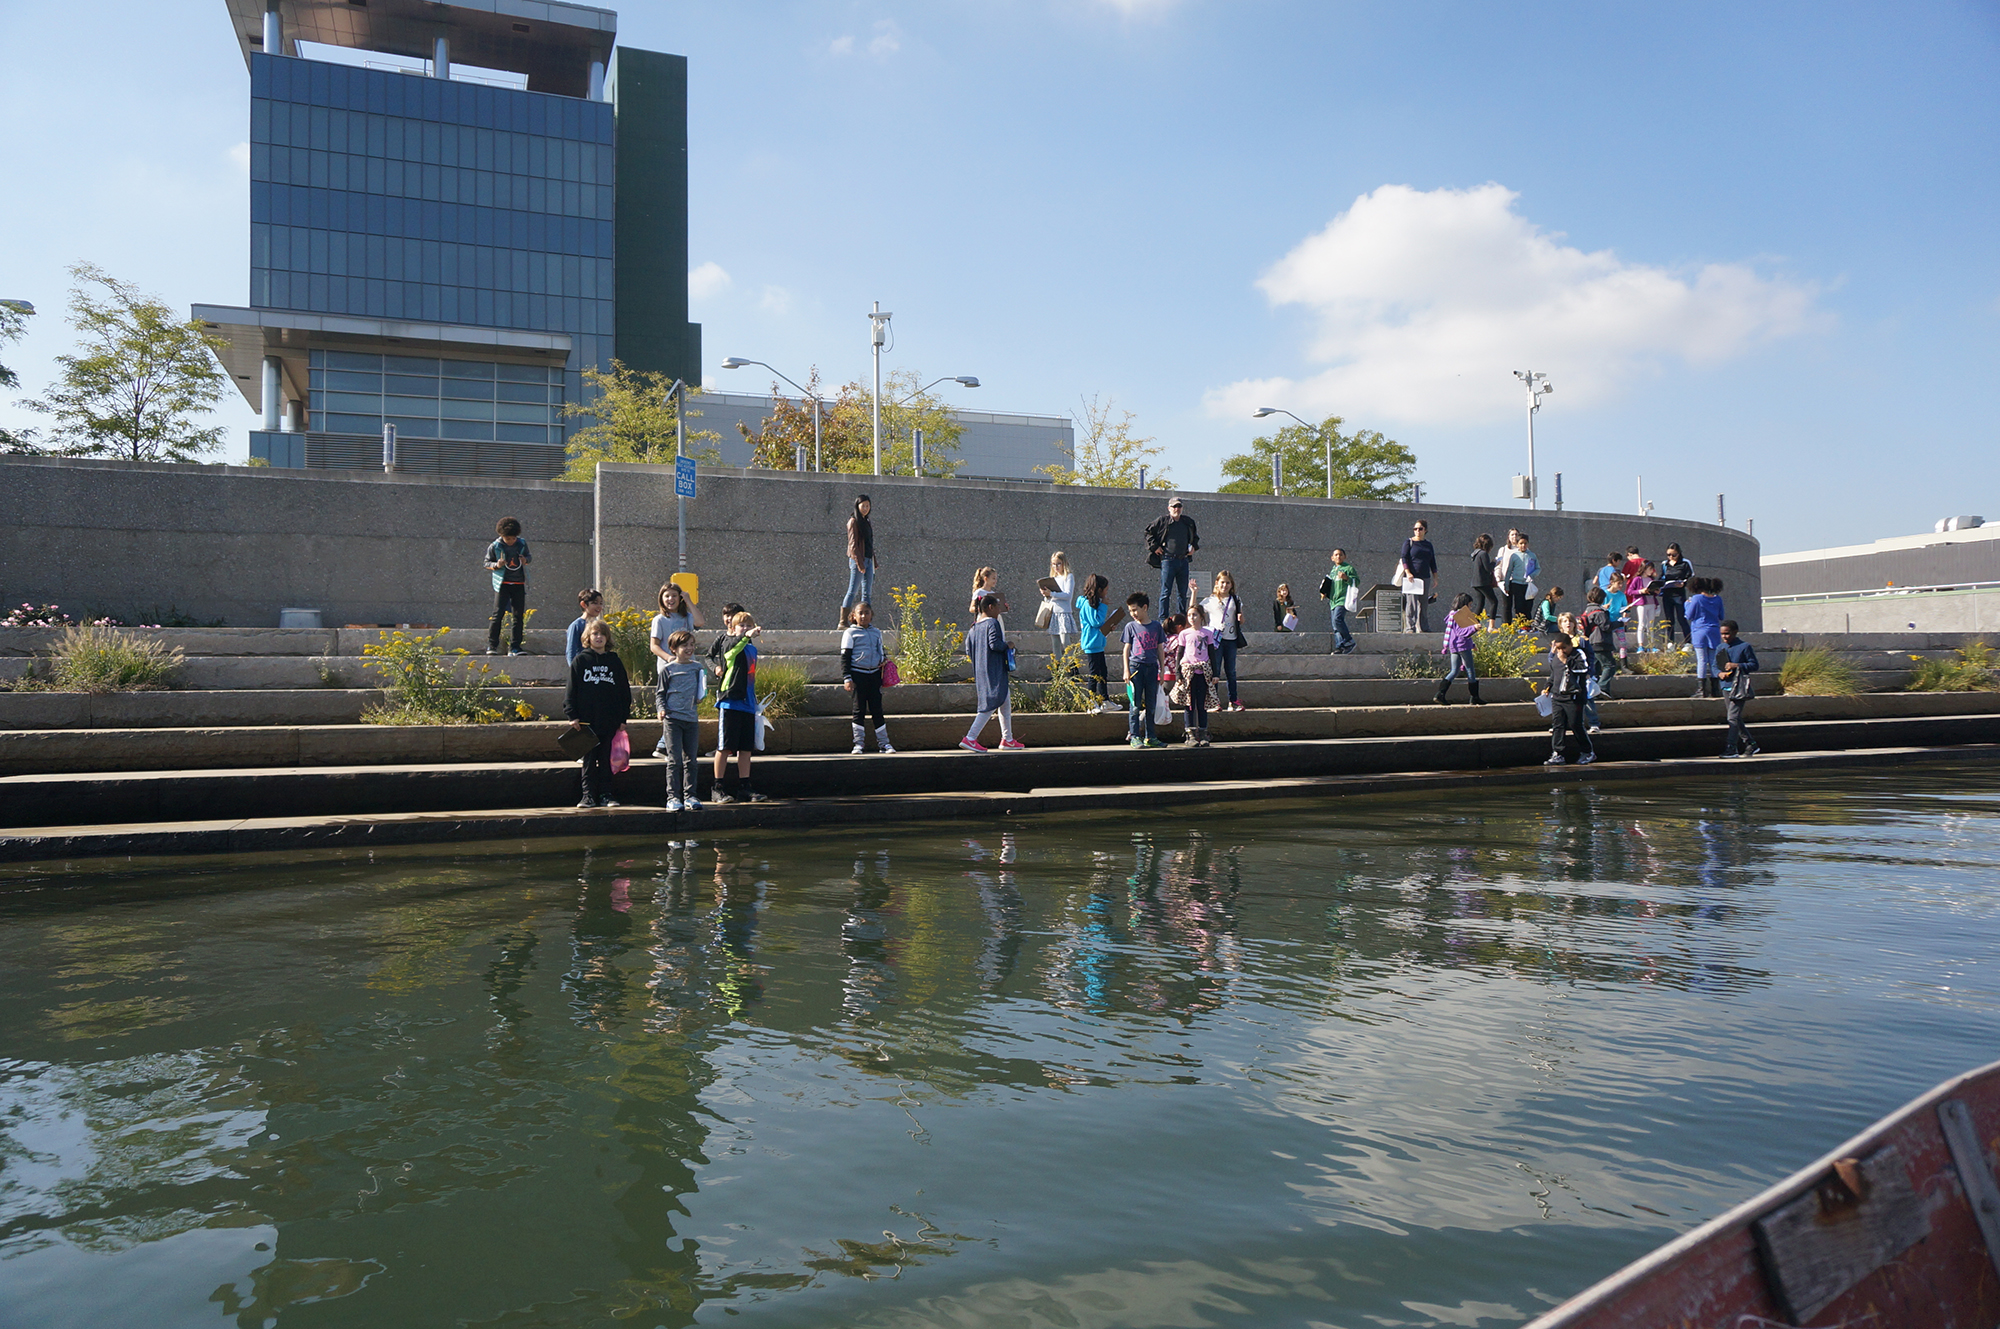 Students take a walk along Newtown Creek on the nature path. Across the water lies an industrial landscape and the city, shown in the header image of the story. Image courtesy of the Newtown Creek Alliance.